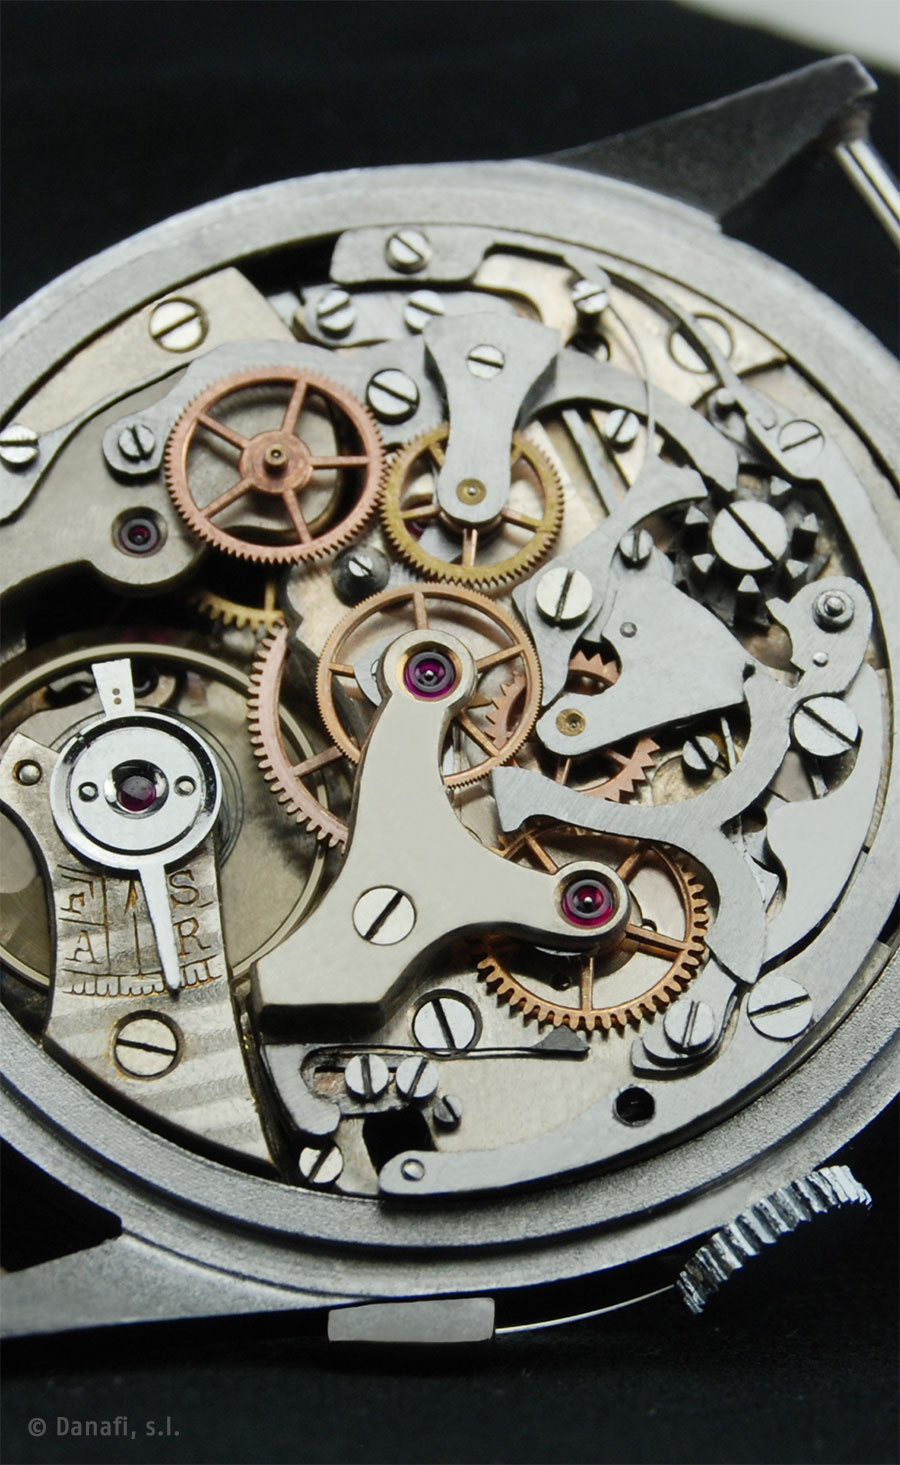 Landeron movement caliber 39.